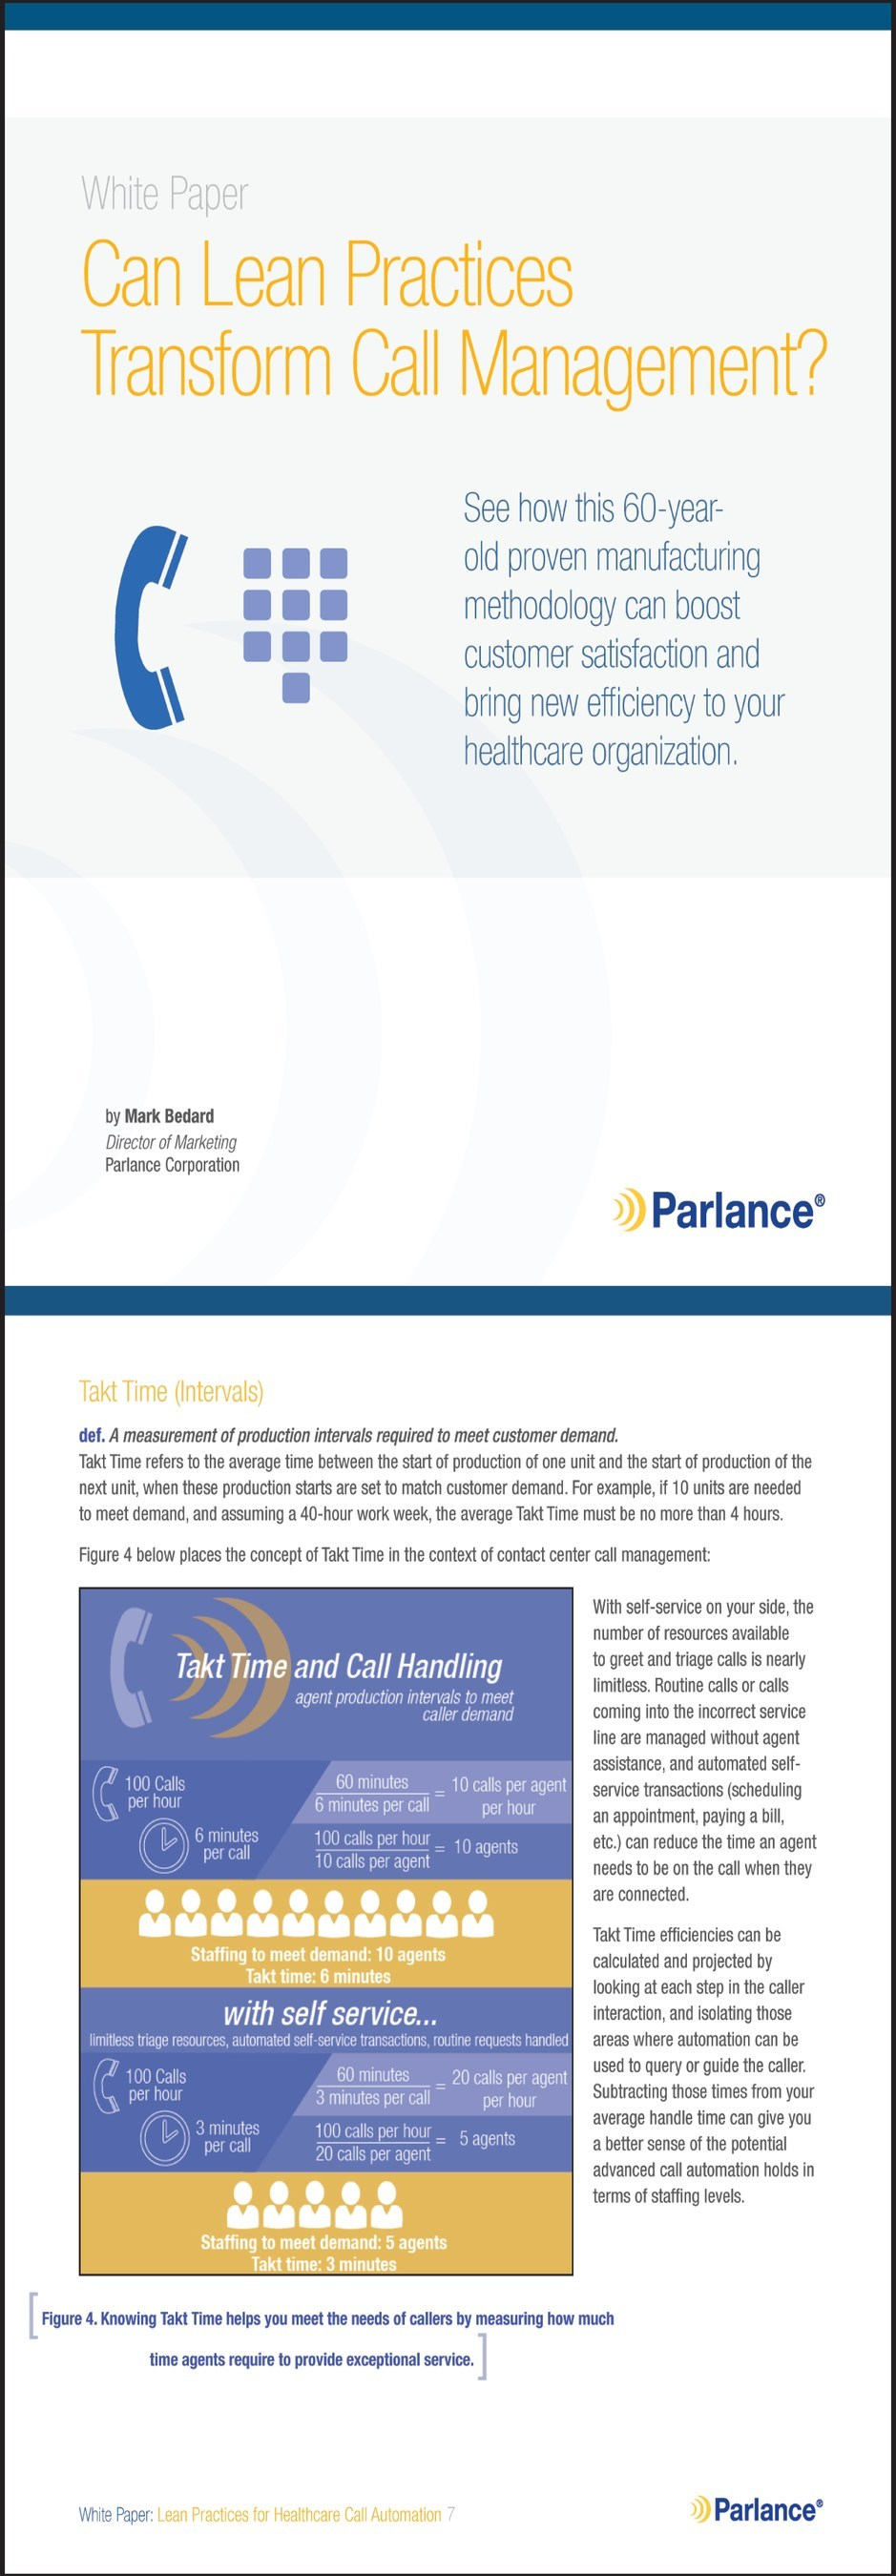 New Study: Can Lean Practices Transform Call Management? Learn how contact centers can improve caller experiences, create new efficiency, and reduce costs by applying Lean principles to call management.